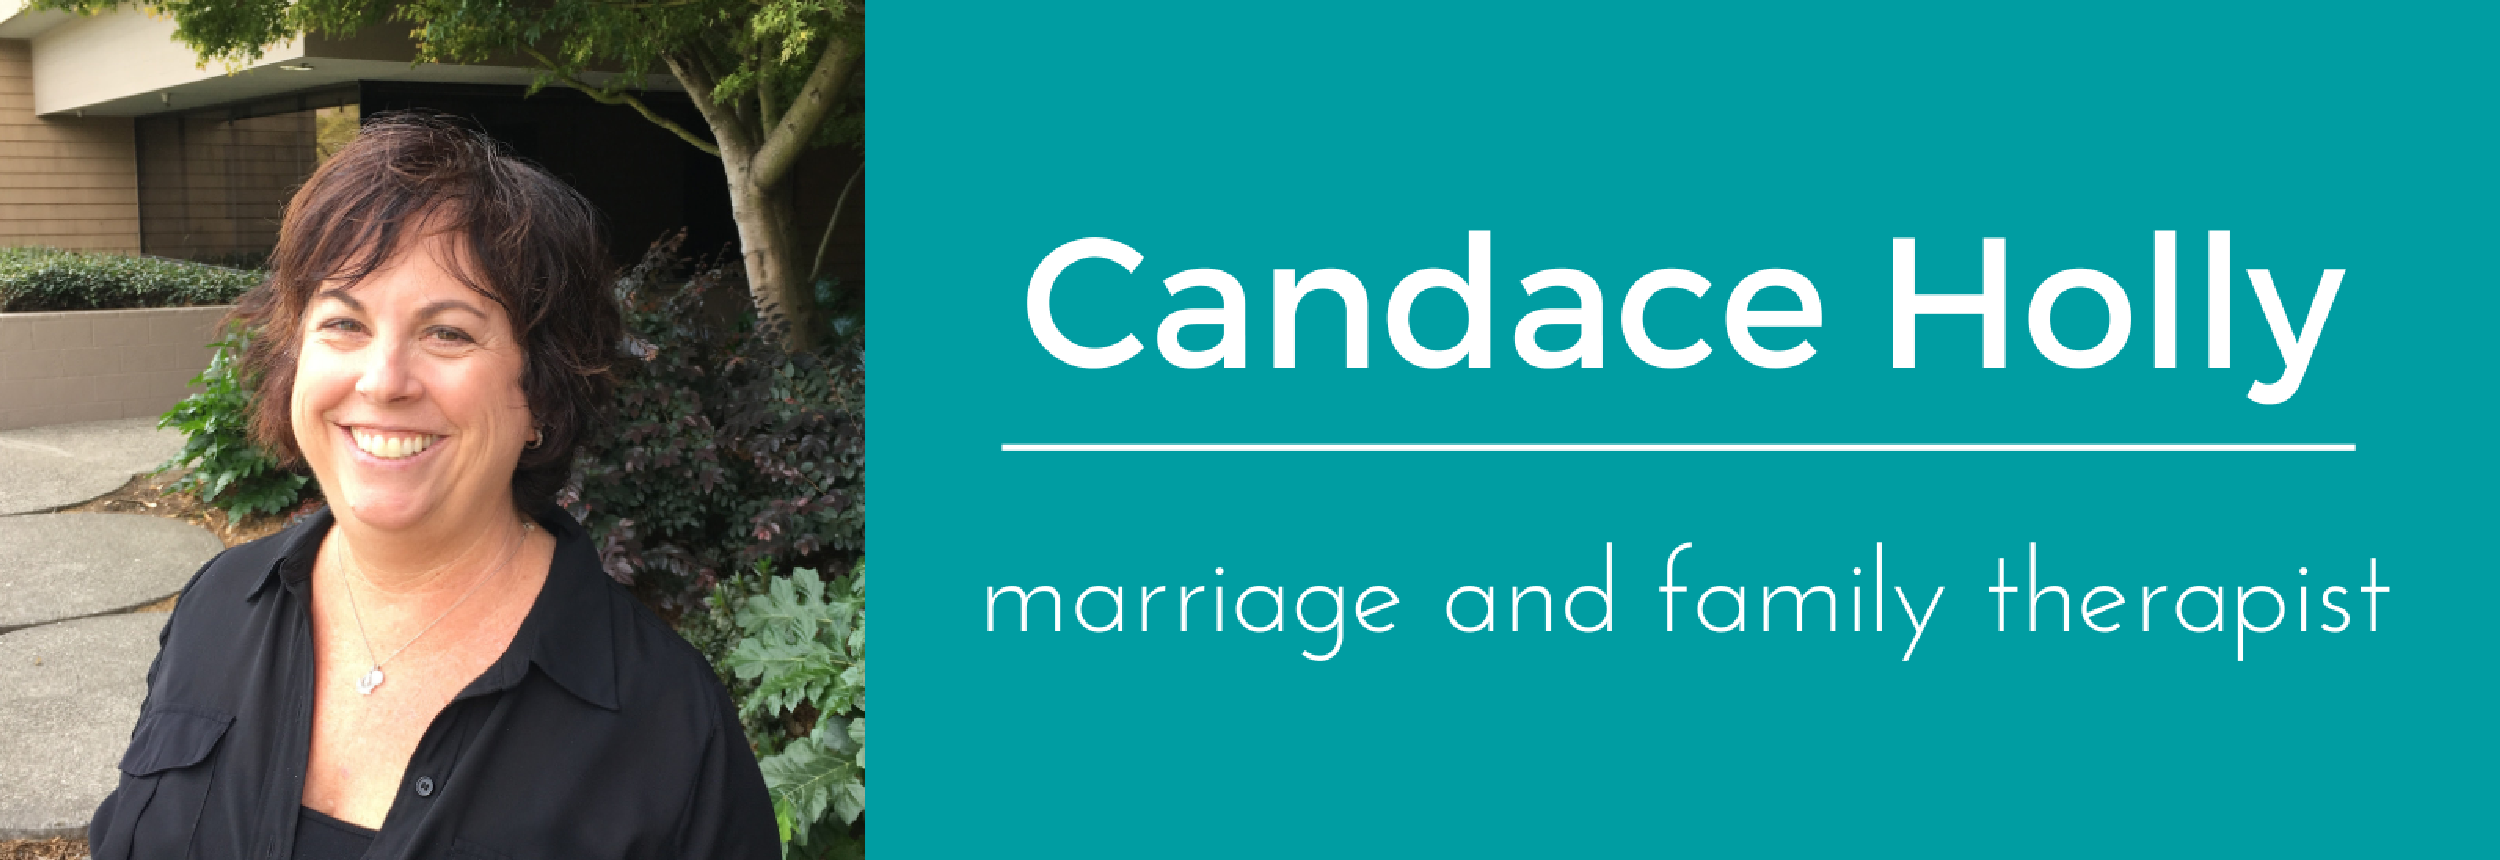 Candace Holly is a marriage and family therapist providing teen counseling in Santa Rosa